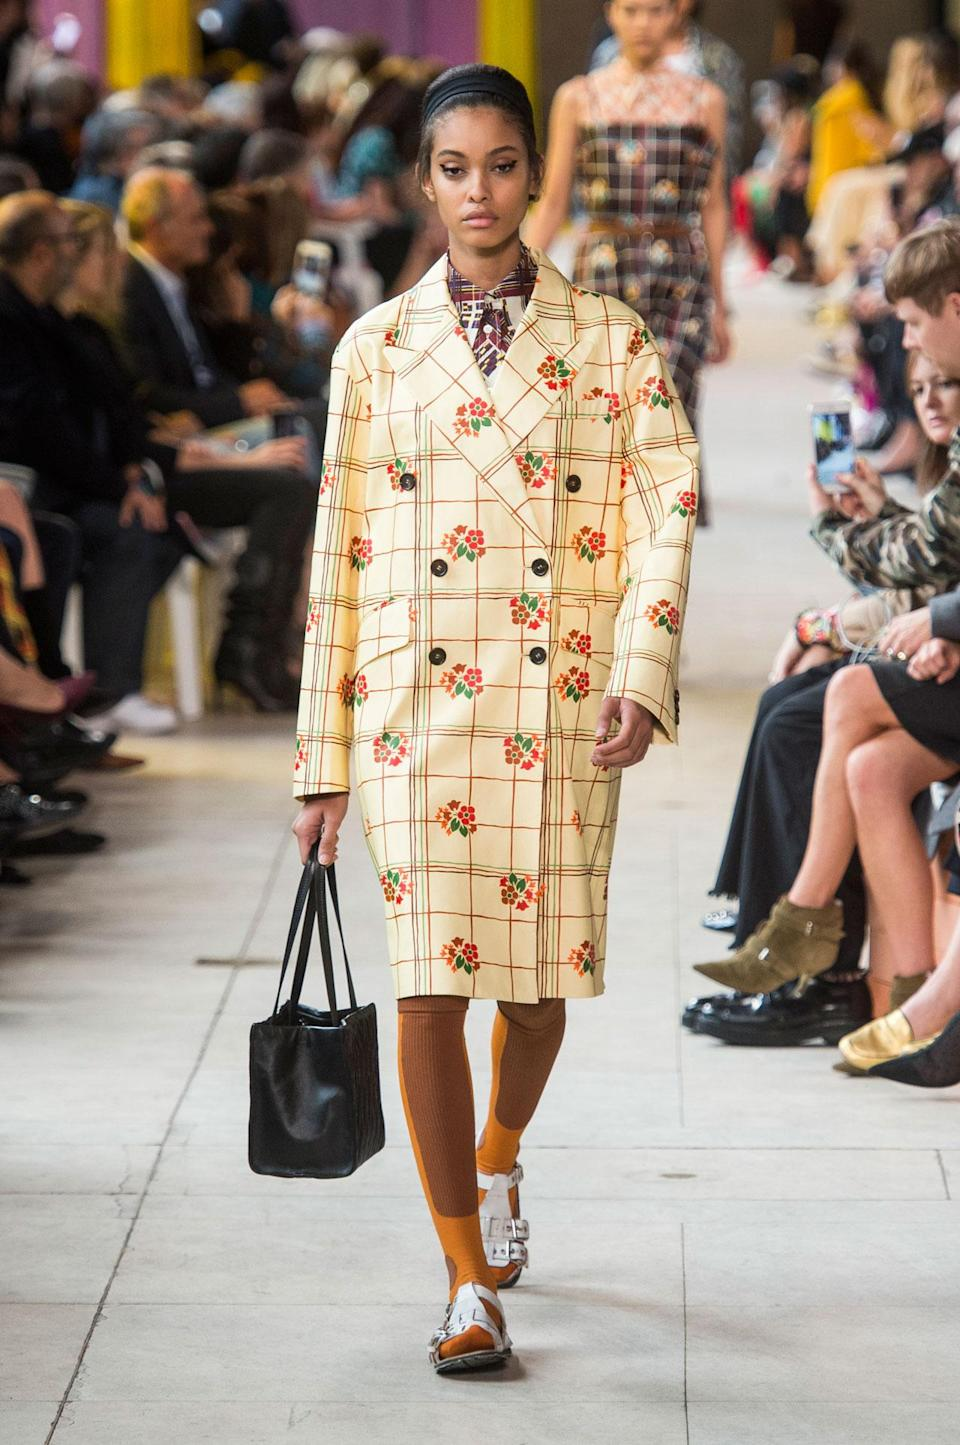 <p>Floral printed pale yellow coat from the SS18 Miu Miu collection. (Photo: ImaxTree) </p>